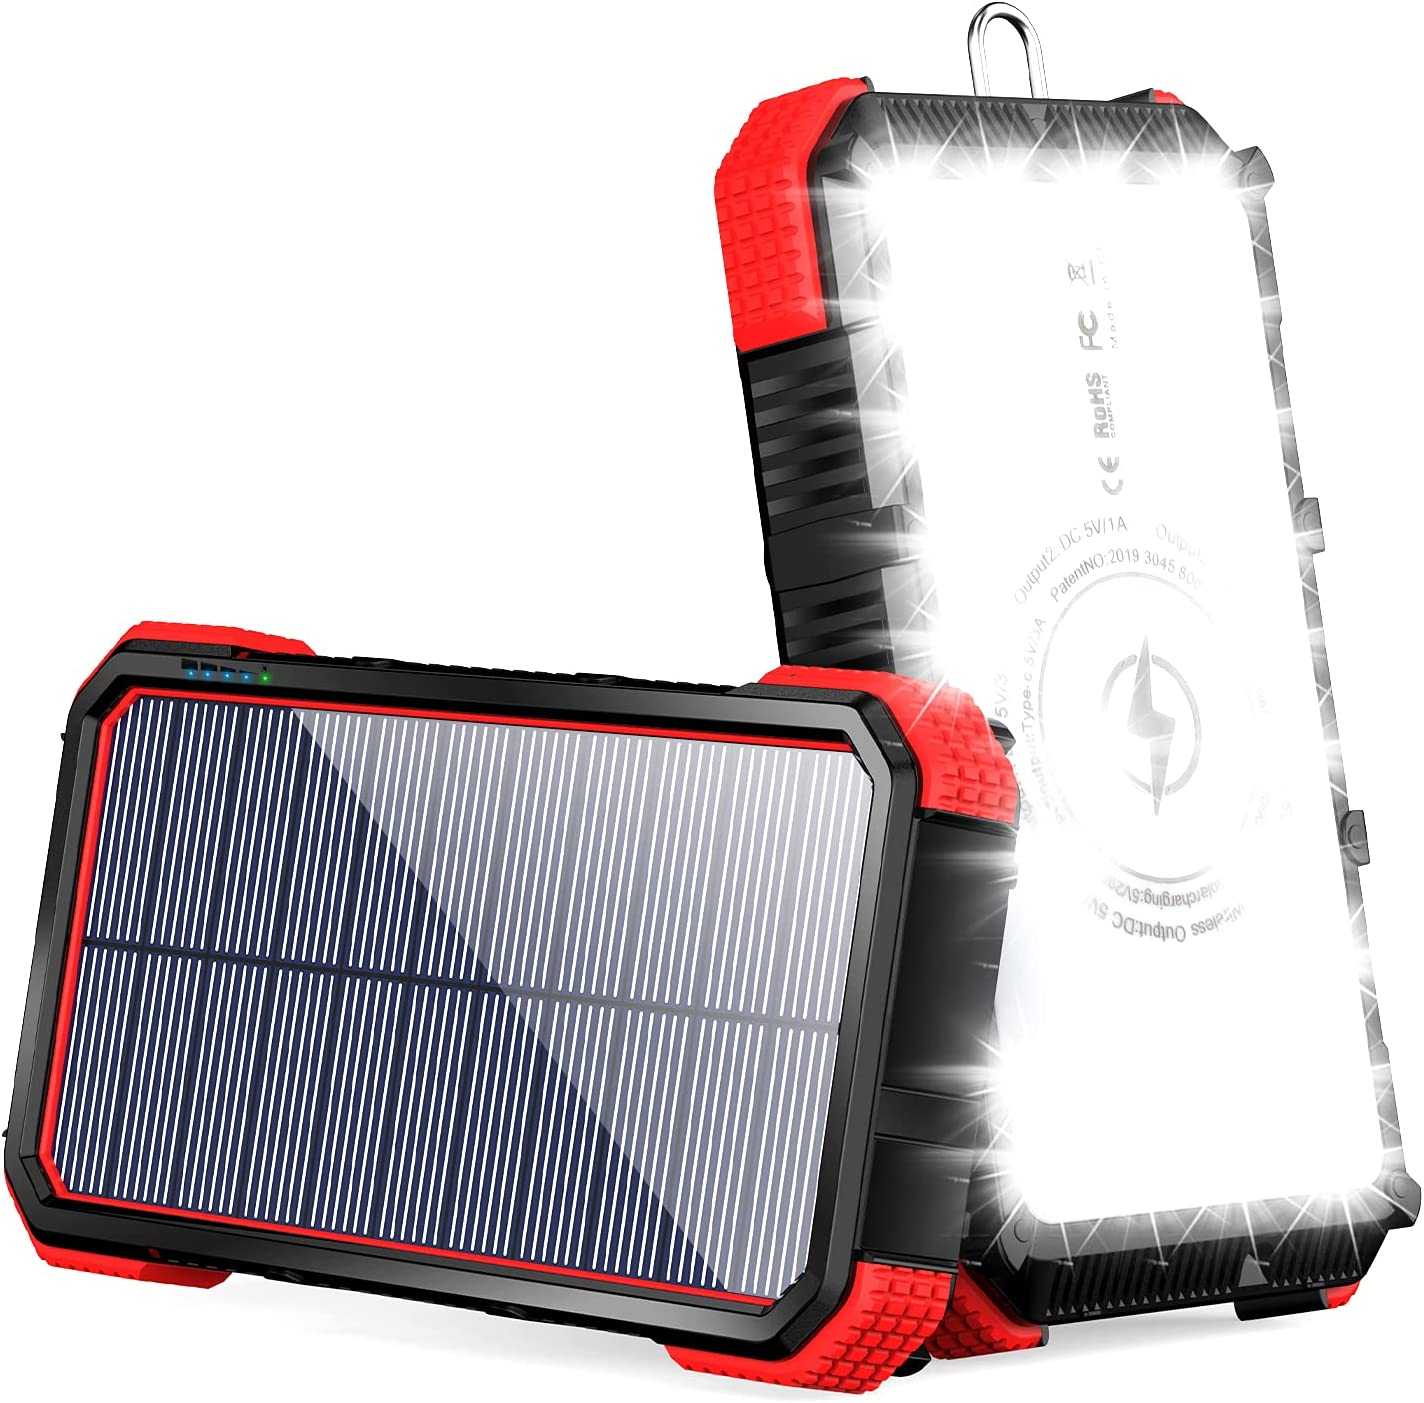 Solar Charger 20000mAh Qi Portable LEDs Emergency Max 73% 55% OFF OFF 36 Ex